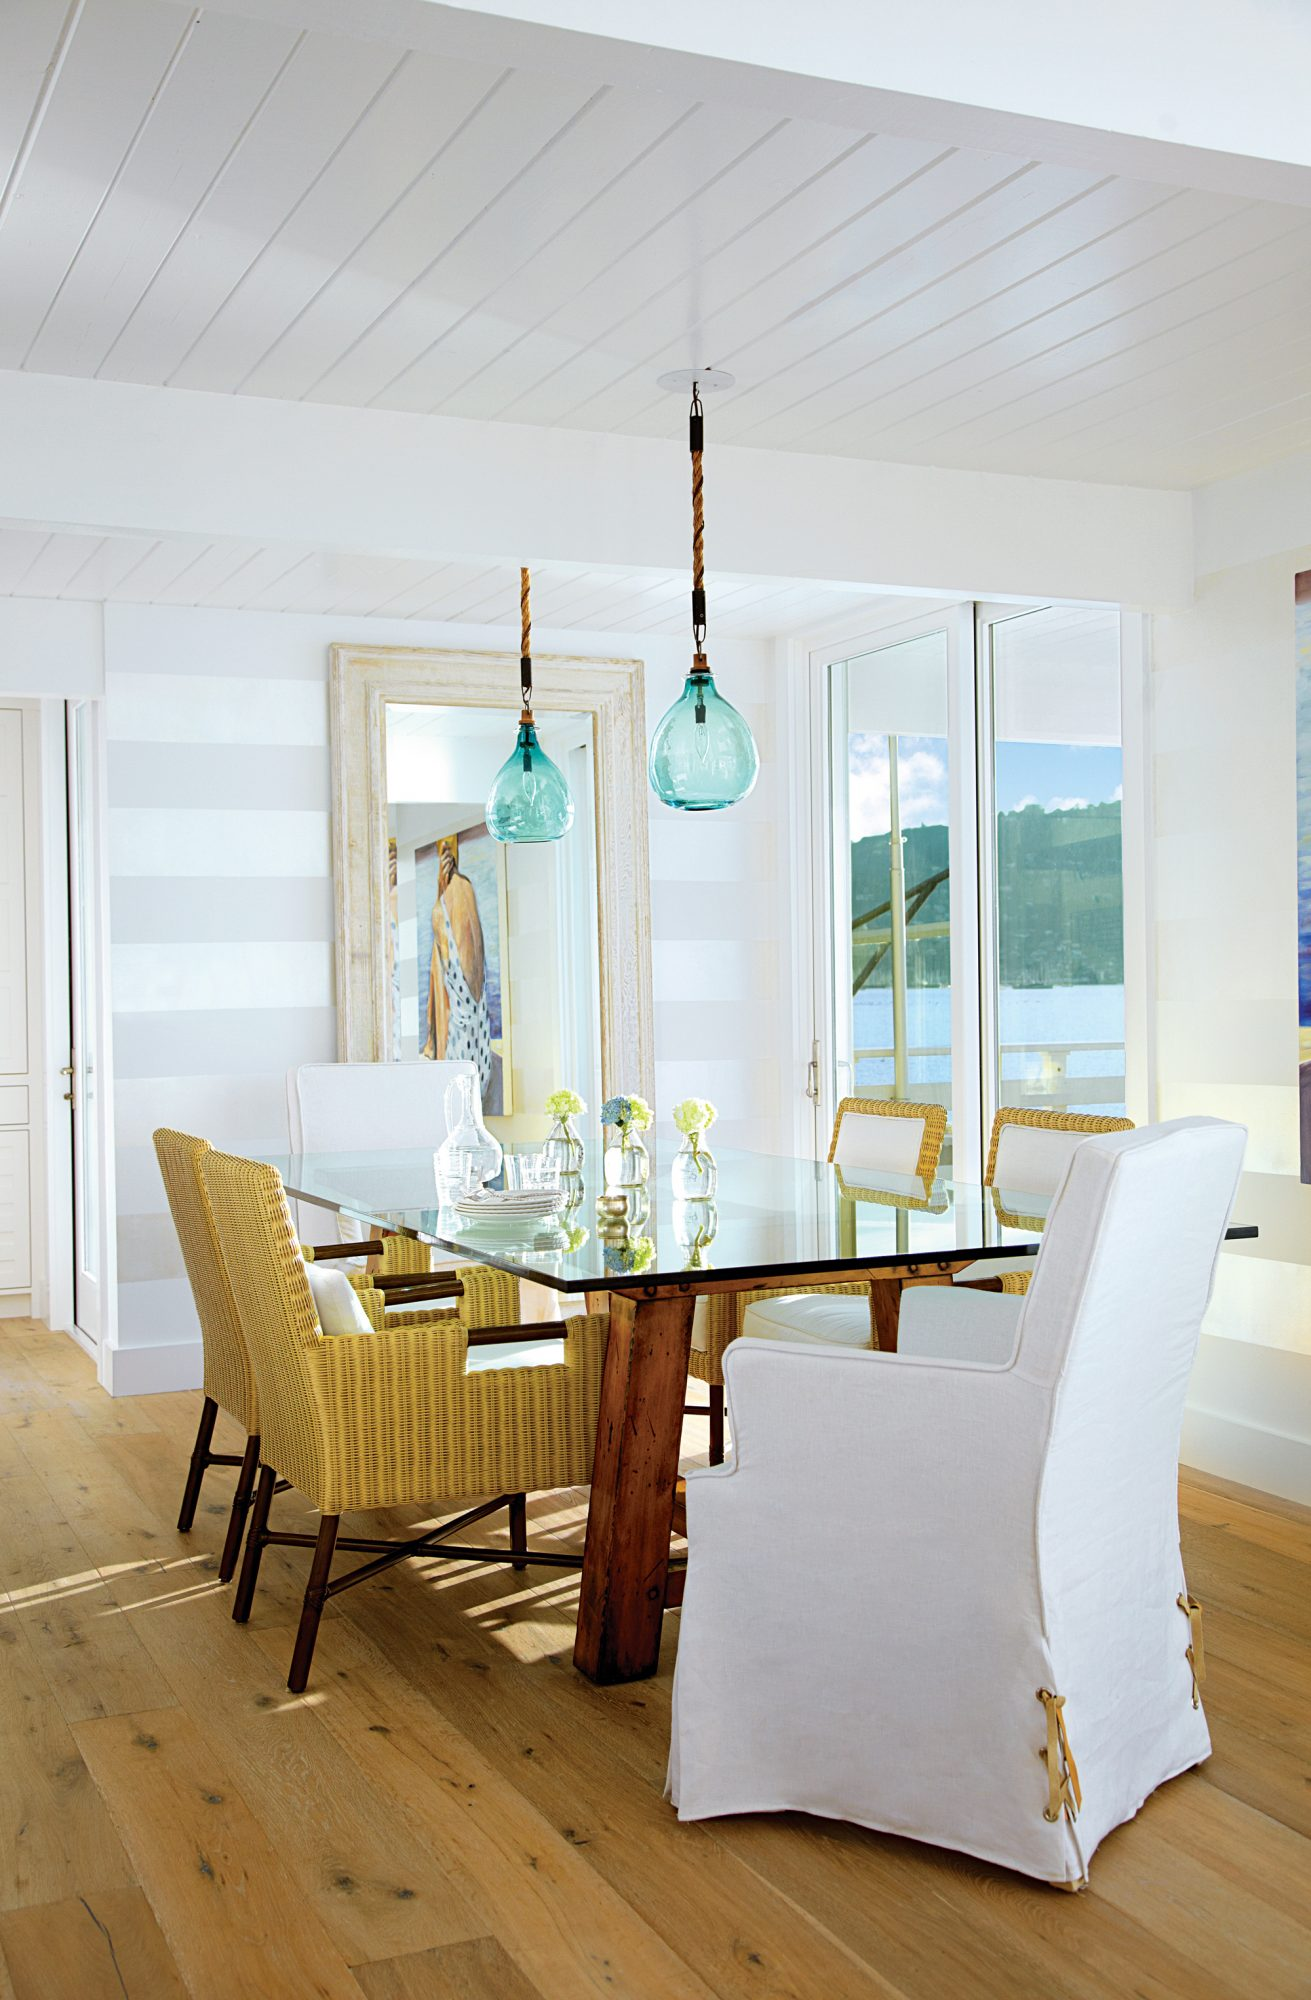 Serenity was the aim in this dining room, so designer and owner Pam Robertson kept it simple. She paired a classic glass-top table with sturdy wooden legs with easygoing slipcovered chairs and deep-seated side chairs, which are perfect for sitting back and enjoying the view.                             Idea Spotlight                             Show your stripes. White walls are warmed up with wide bands of pearly gray in the subdued dining room of this 1960s cottage in Belvedere, California.